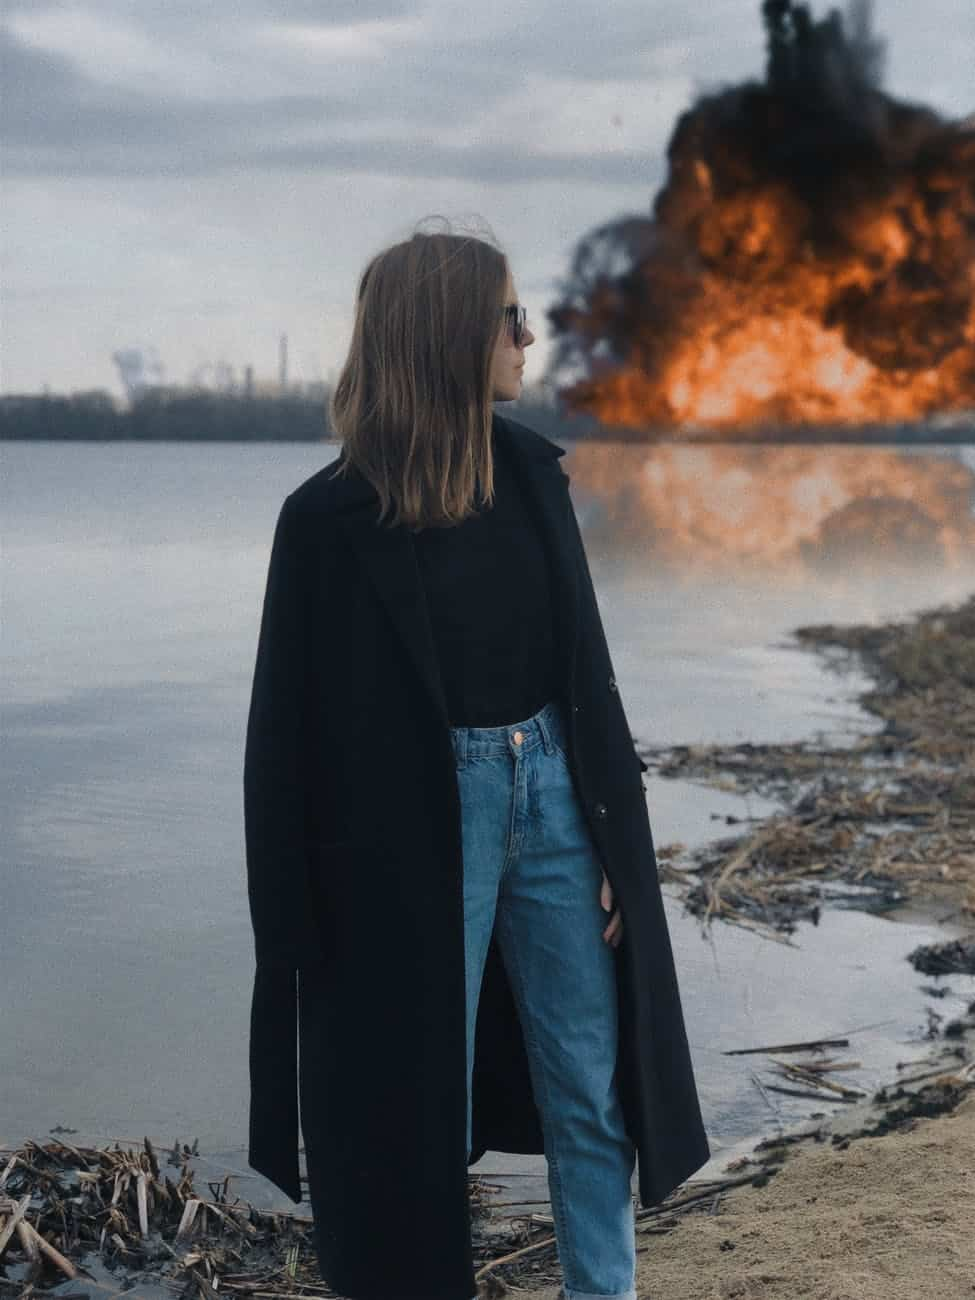 woman in black coat standing near body of water